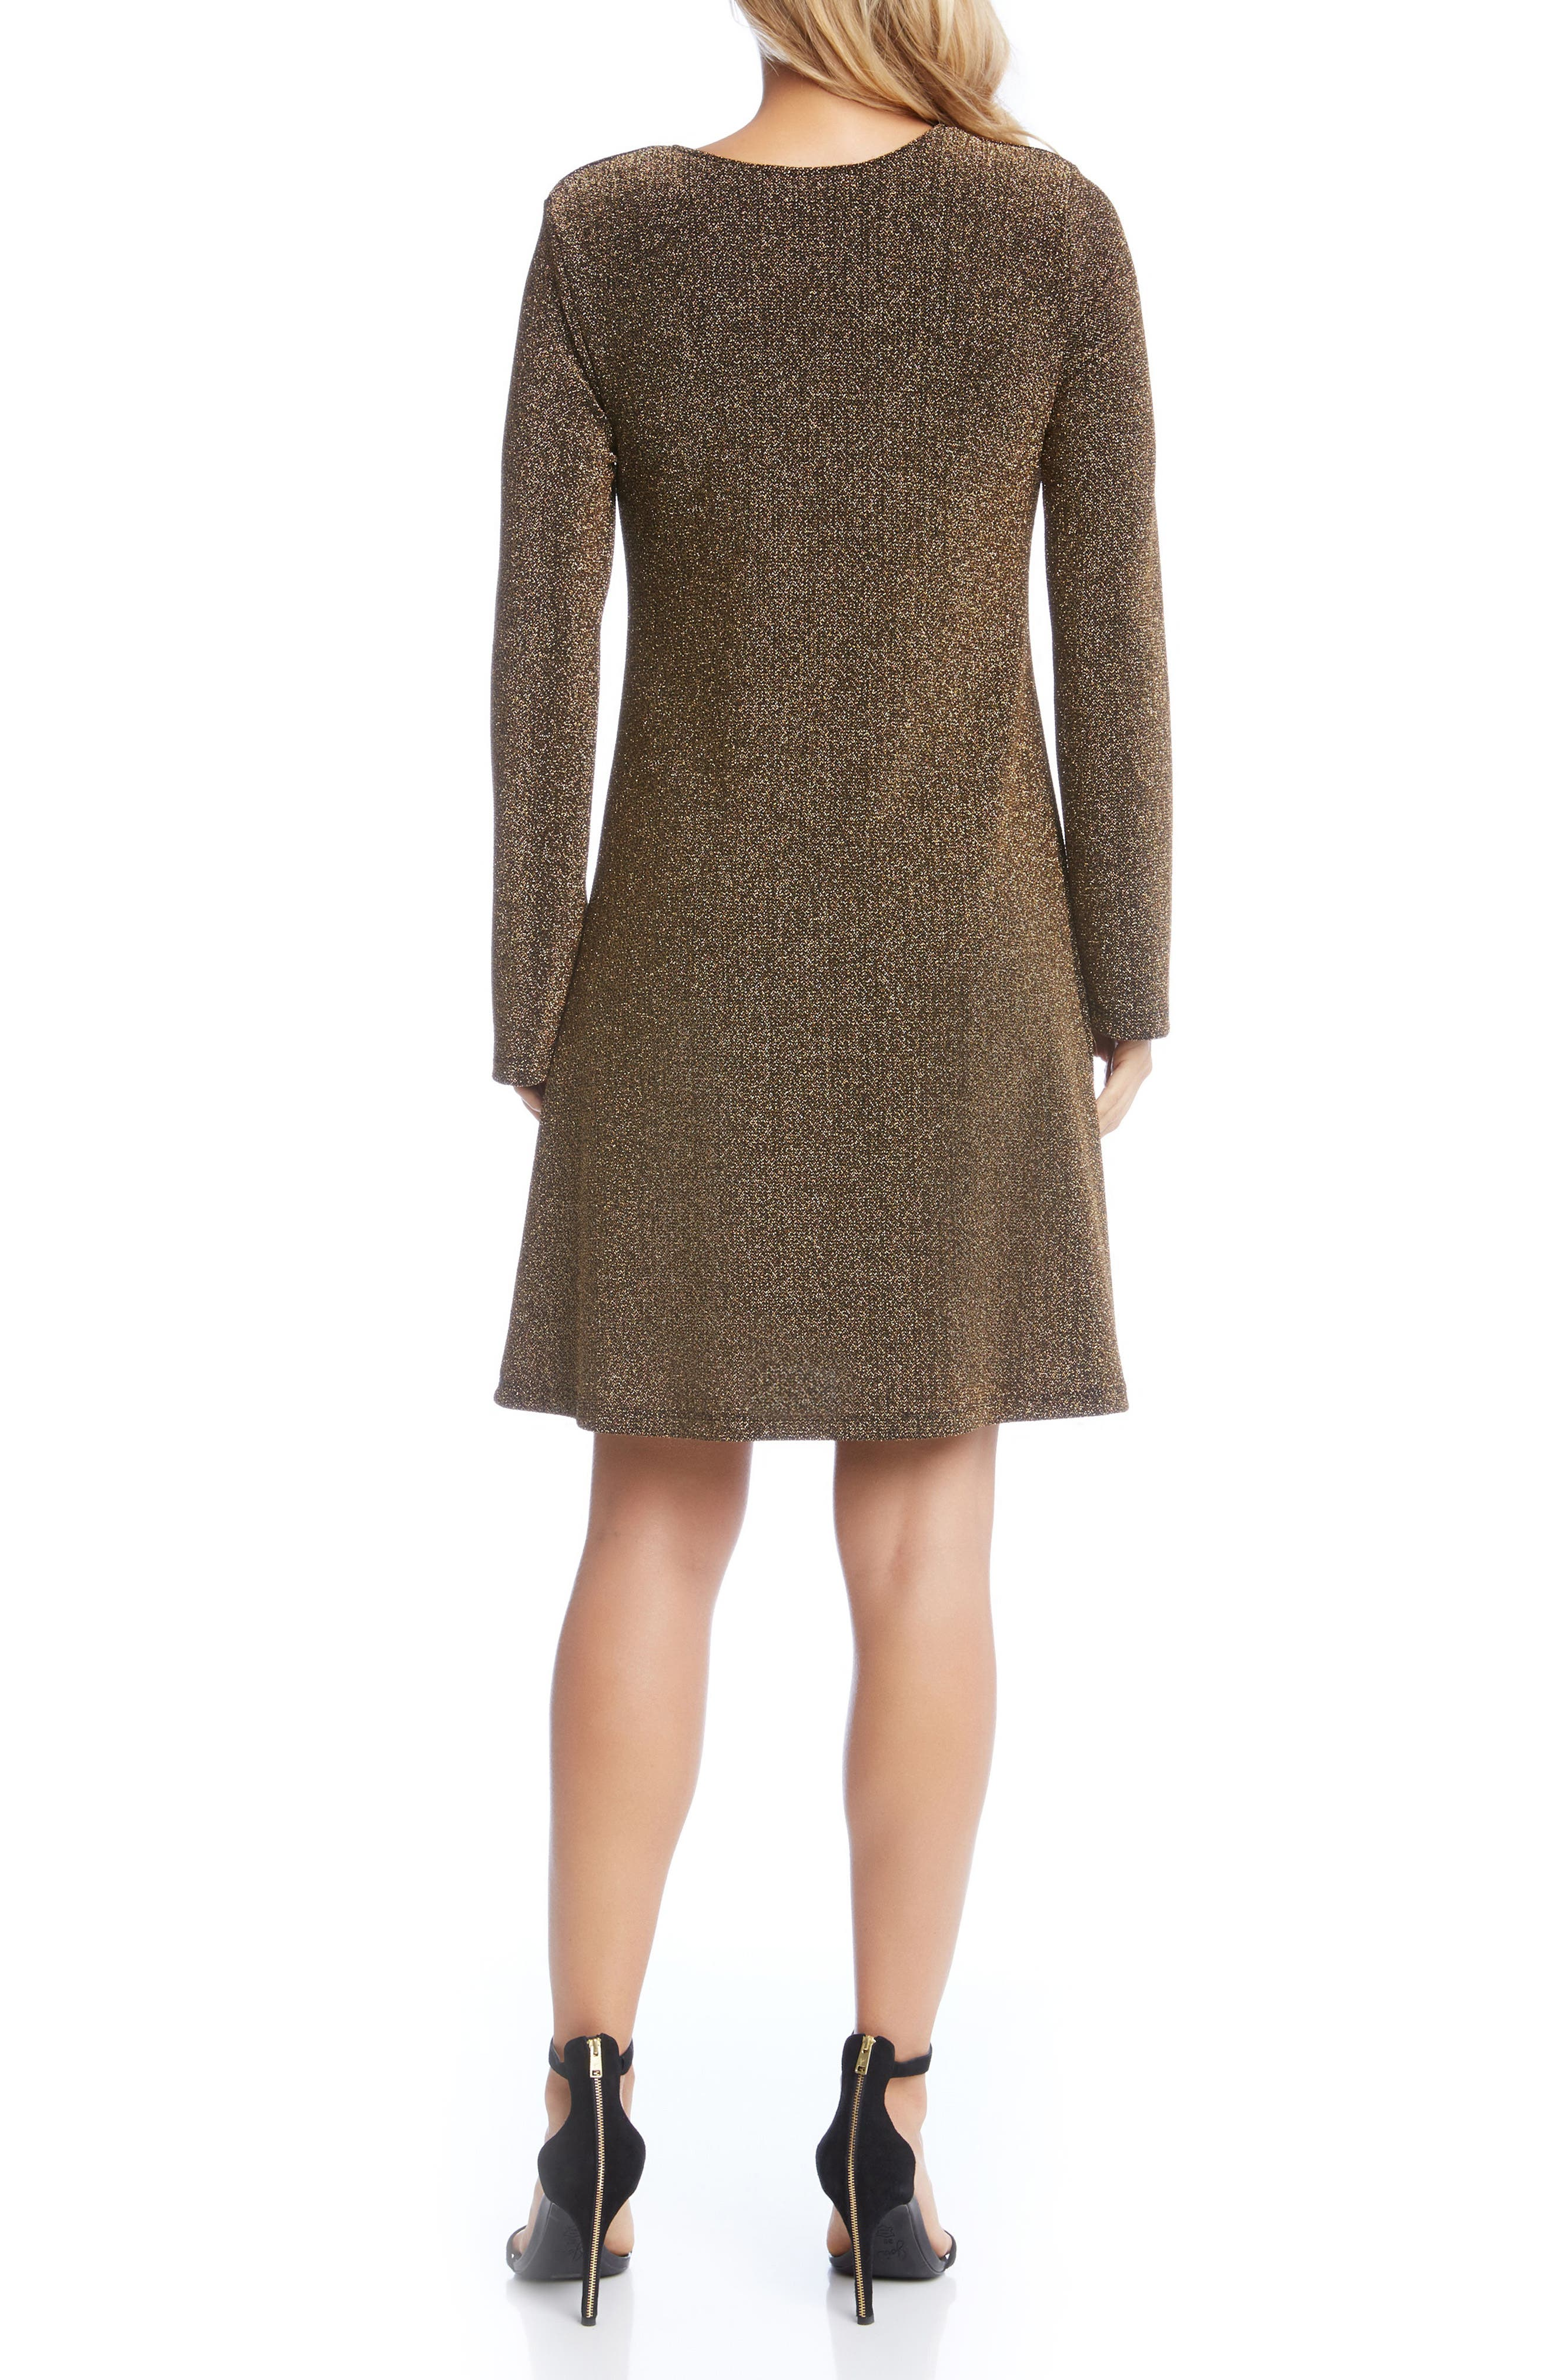 Gold Knit Taylor Dress,                             Alternate thumbnail 2, color,                             Gold